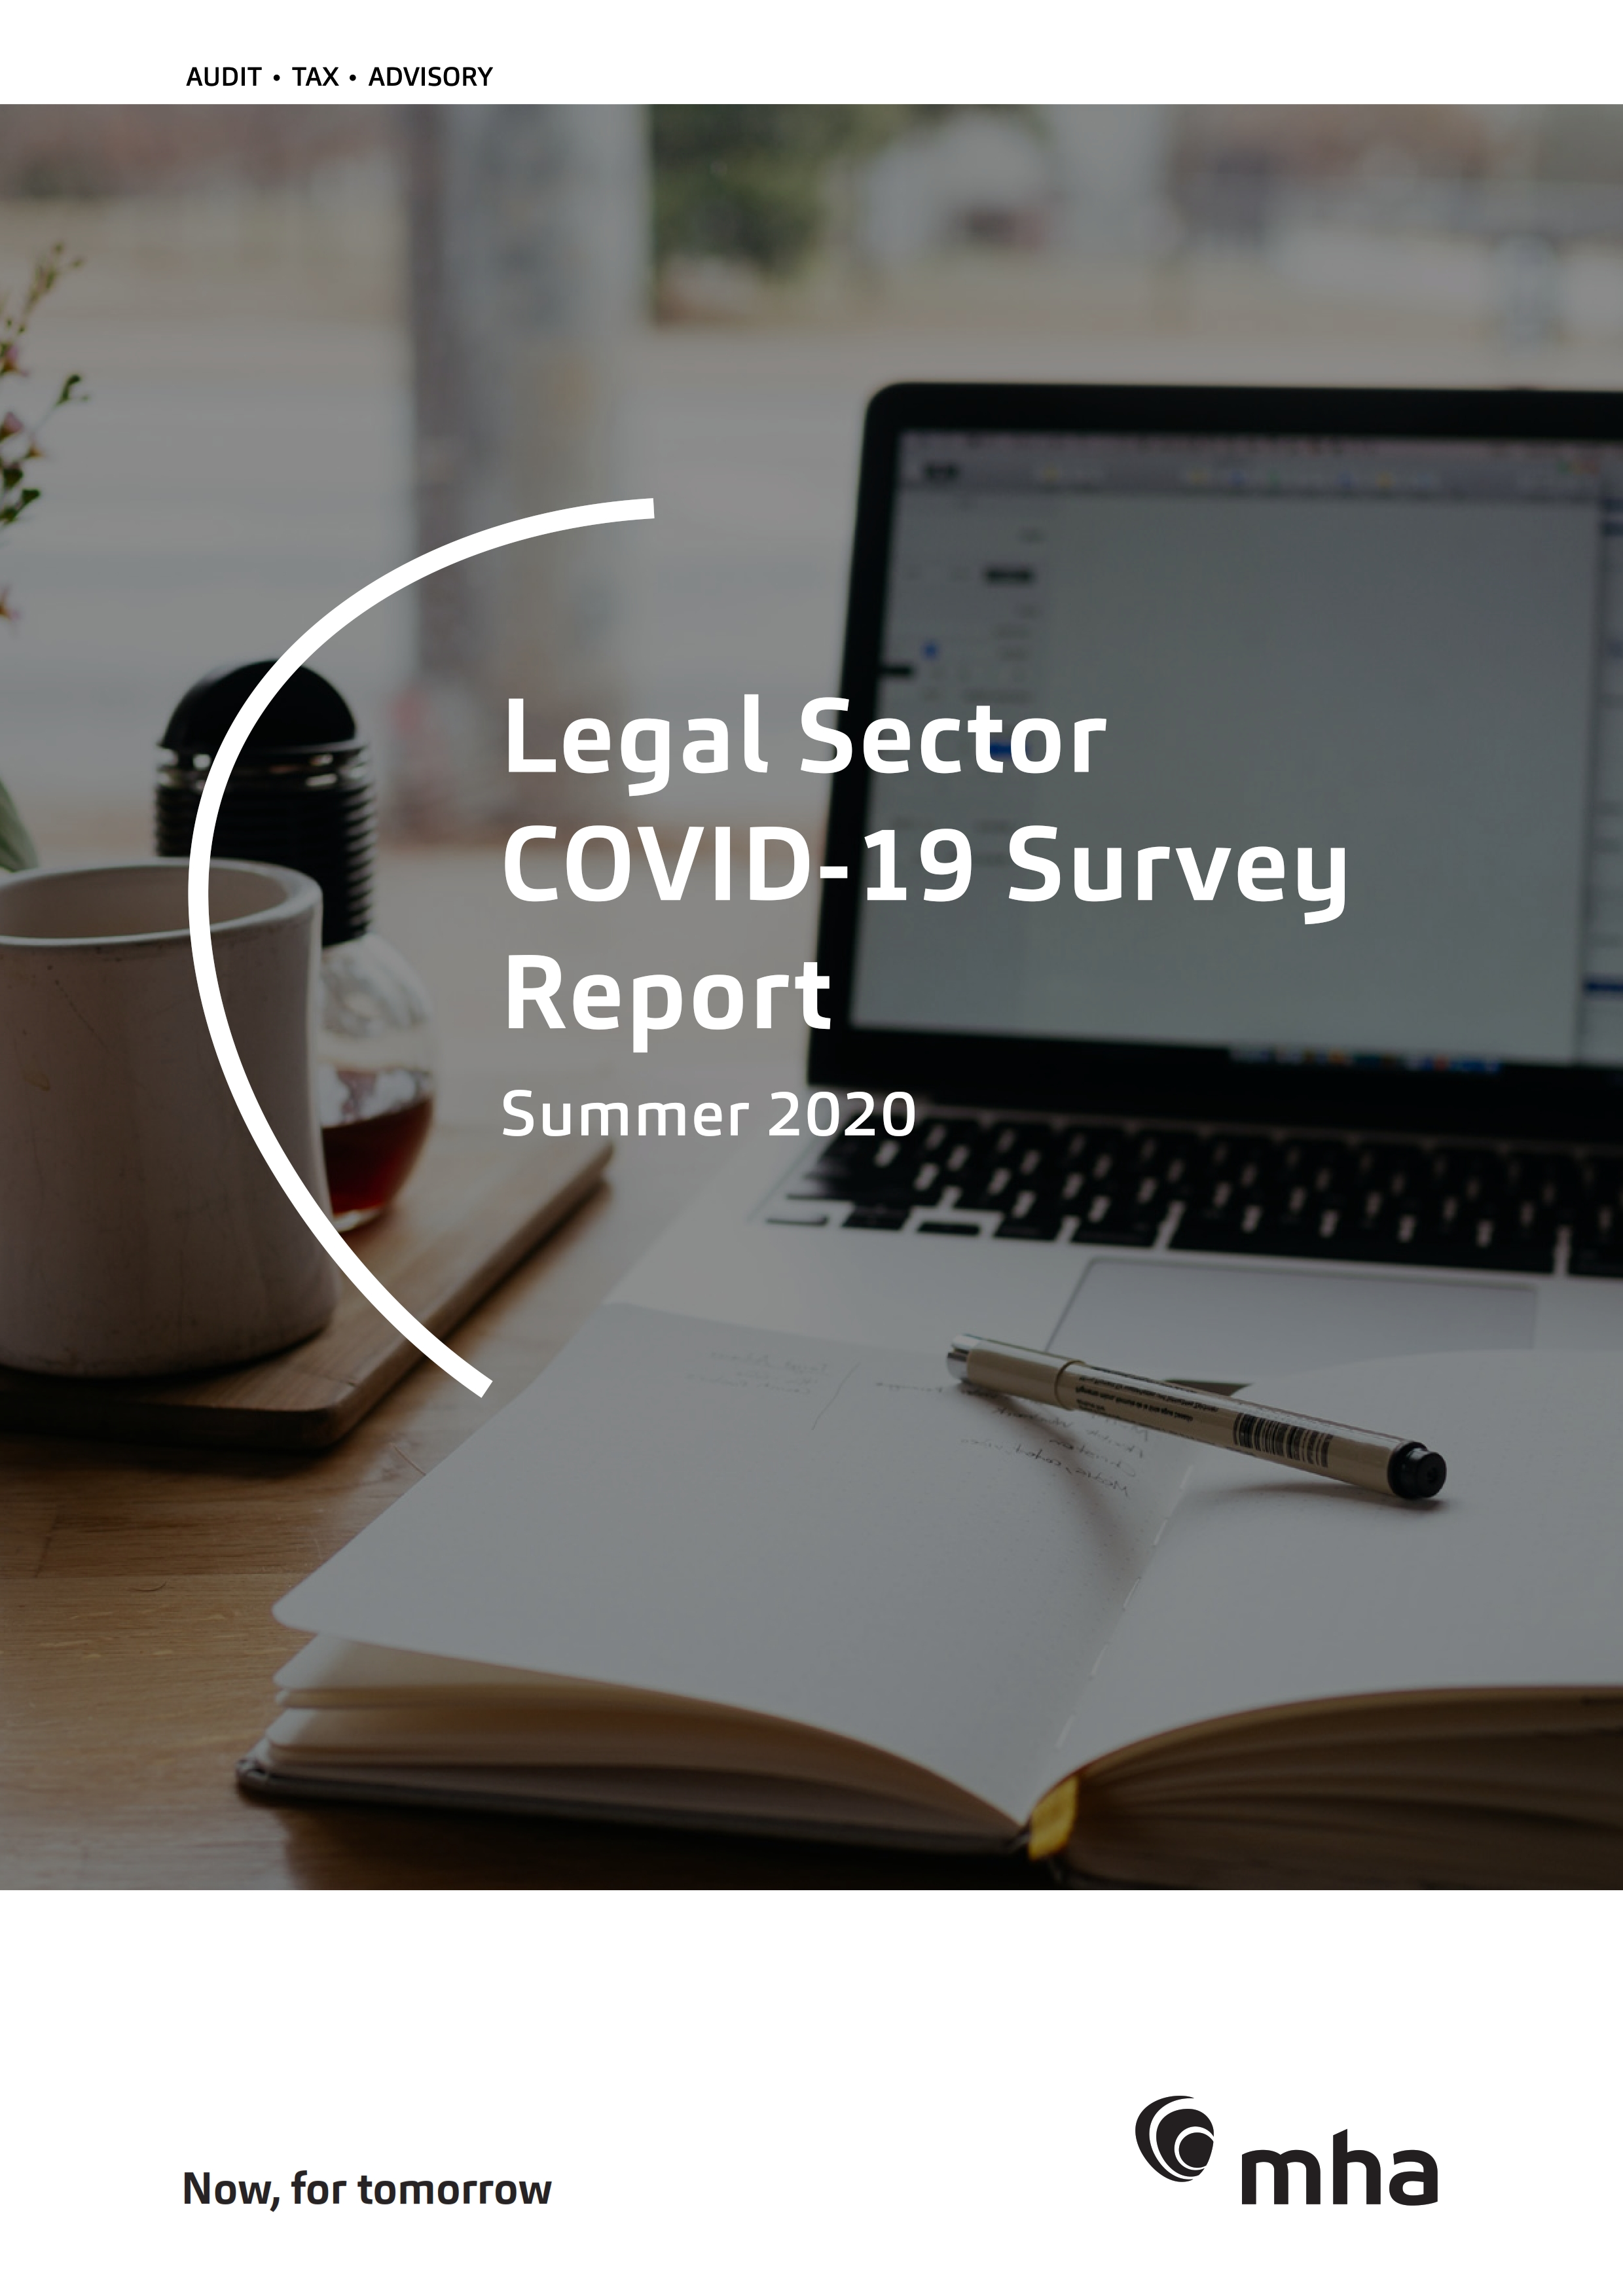 MHA Legal Sector COVID-19 Survey Report